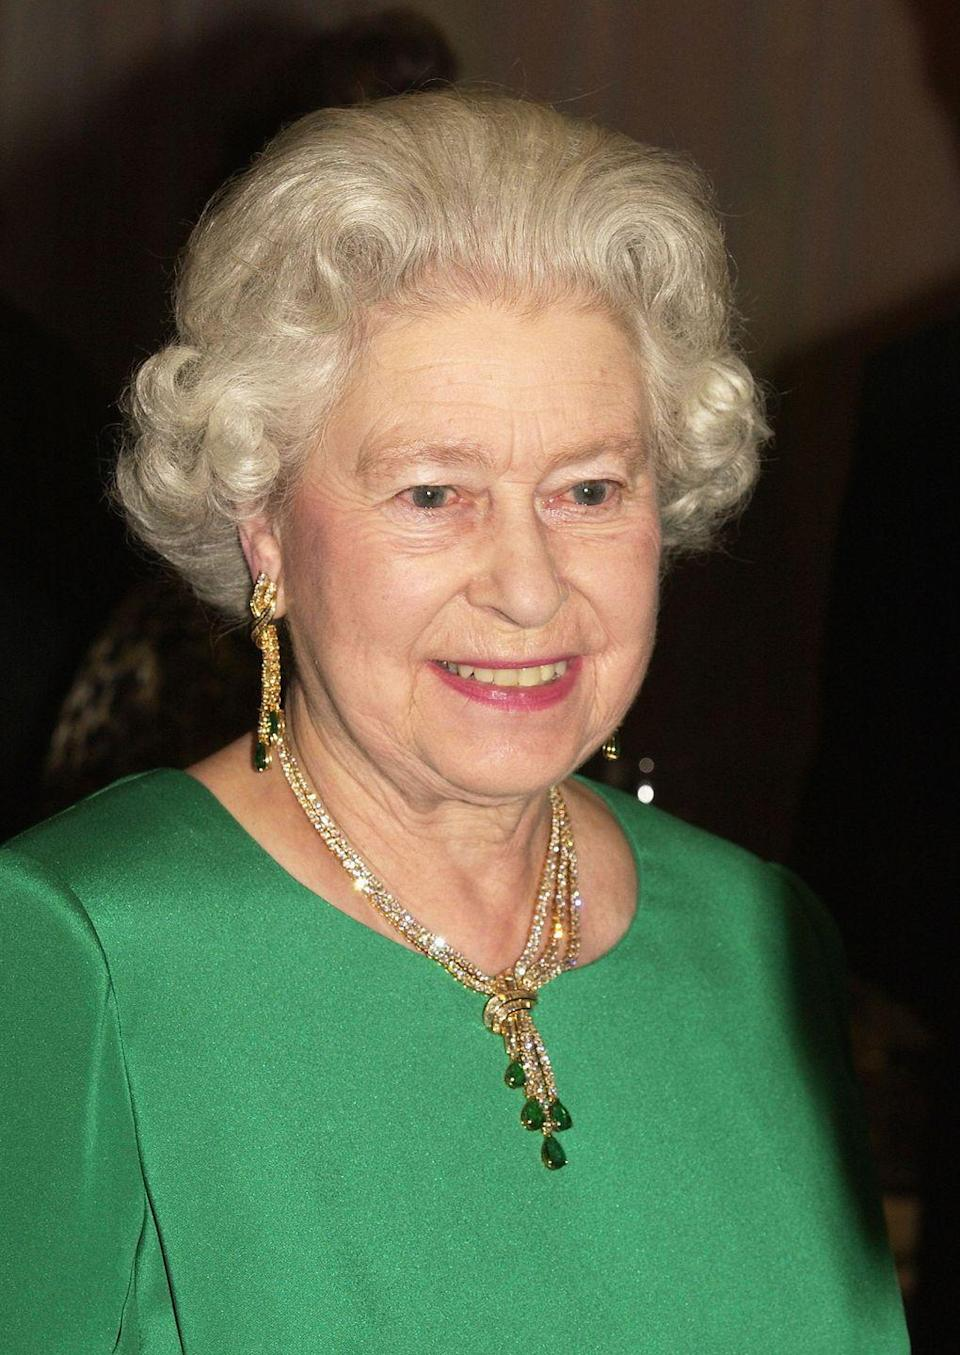 """<p>Queen Elizabeth wore the gold Delhi Durbar set to a royal gala in Wales in 2004. The featured emeralds had once <a href=""""https://www.harpersbazaar.com/wedding/bridal-fashion/g23656976/best-royal-family-jewelry-of-all-time/?slide=24"""" rel=""""nofollow noopener"""" target=""""_blank"""" data-ylk=""""slk:belonged"""" class=""""link rapid-noclick-resp"""">belonged</a> to Queen Mary's grandmother. <br></p>"""